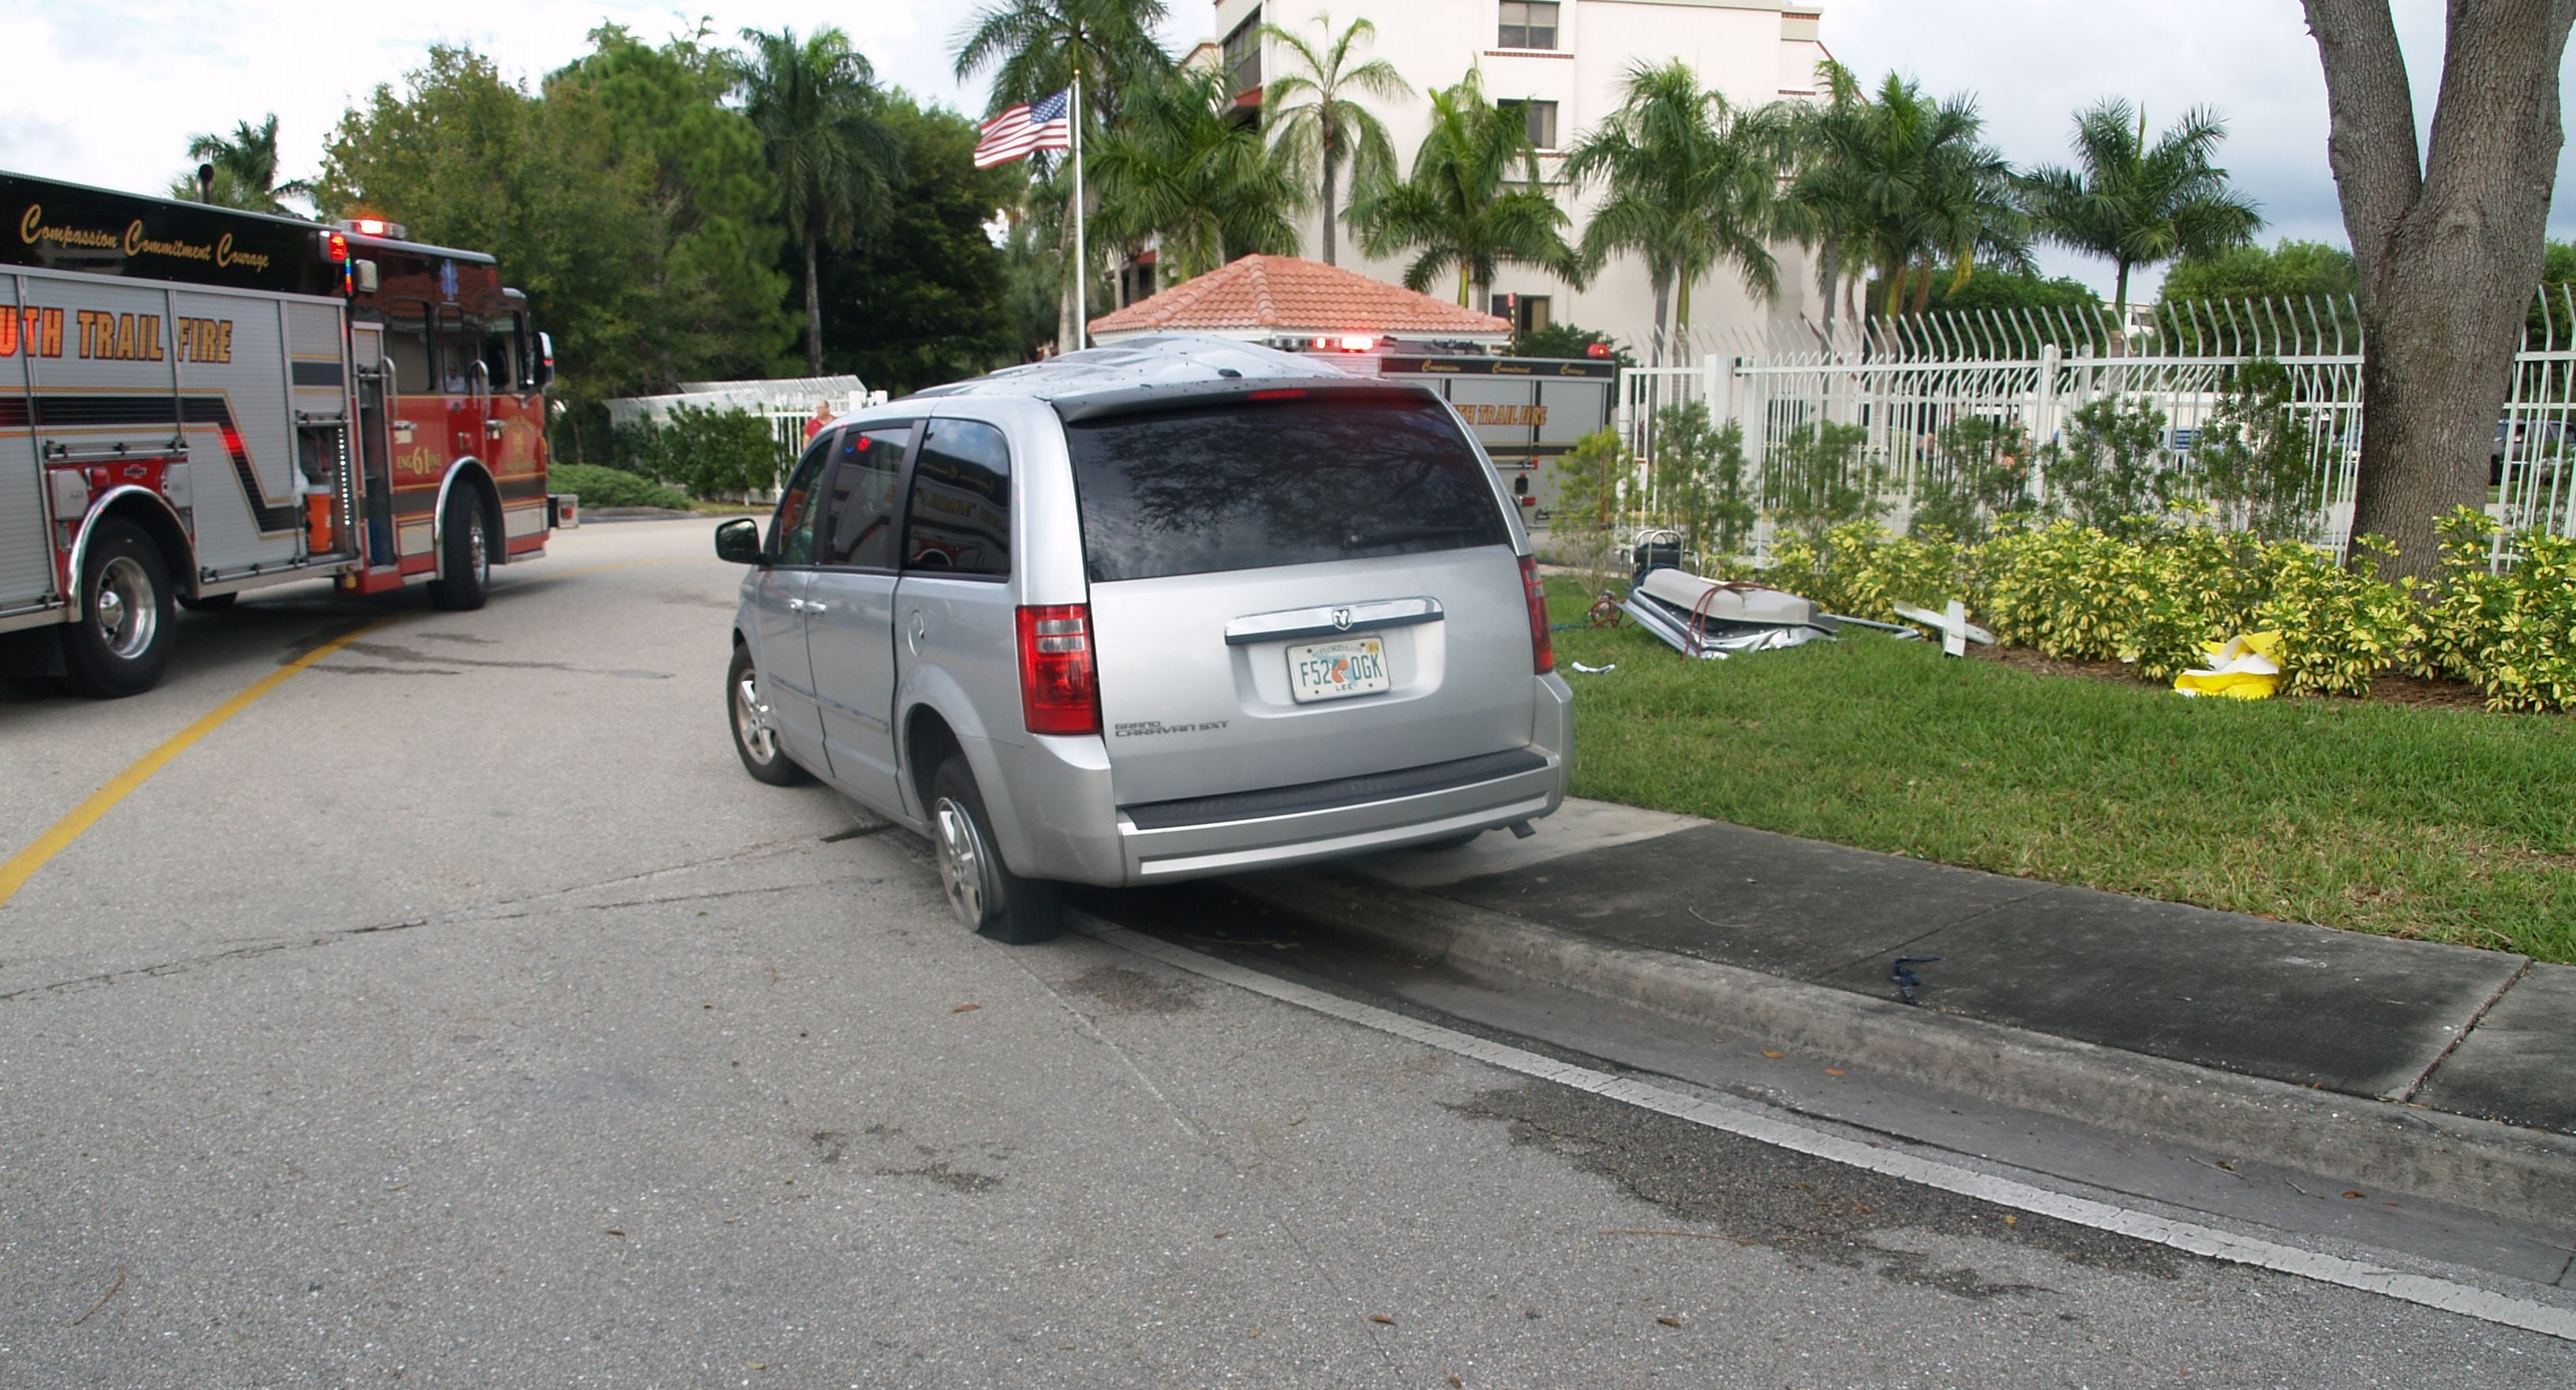 Evelyn Miozza, 78, was driving a 2008 Dodge Caravan when she made a left-hand turn and collided with motorcyclist Sean Parke in January 2014. Parke, who was speeding, died in the crash.